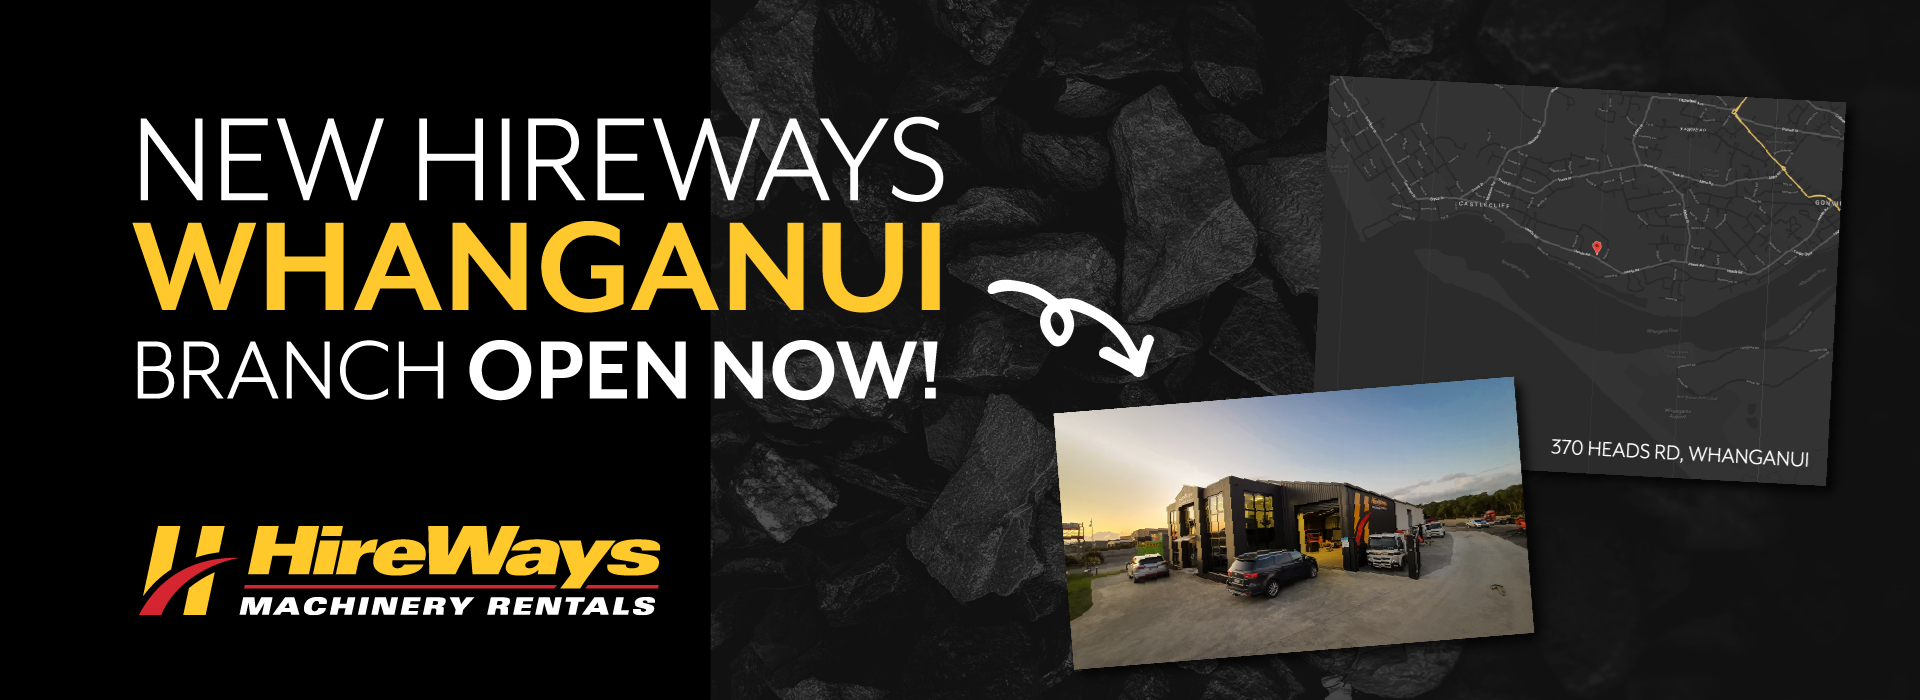 HireWays Whanganui is open now